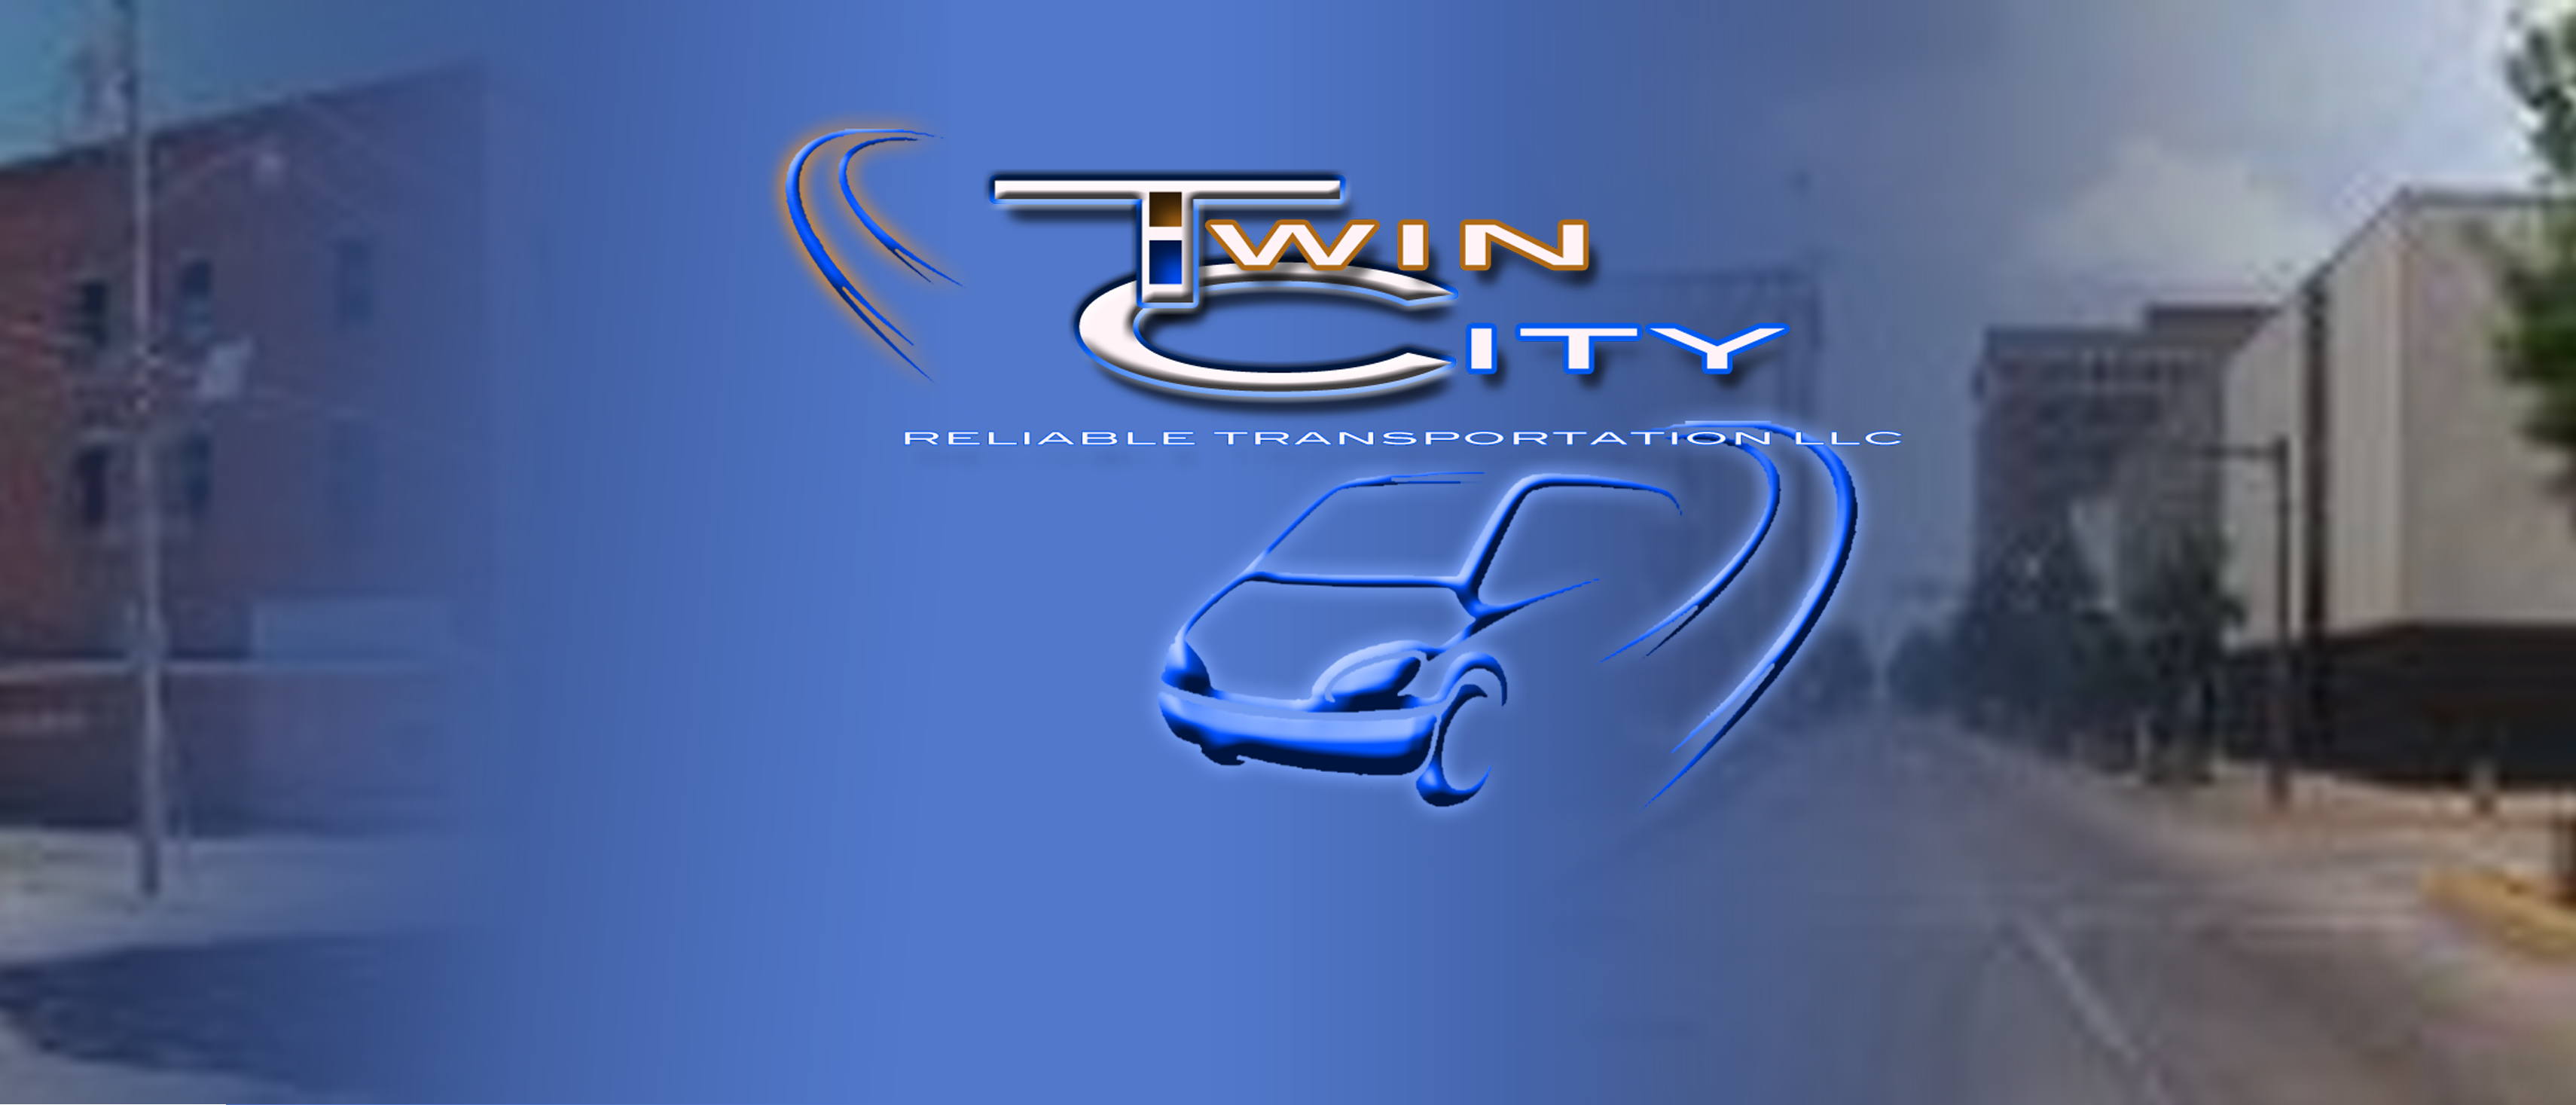 Twin City Transportation